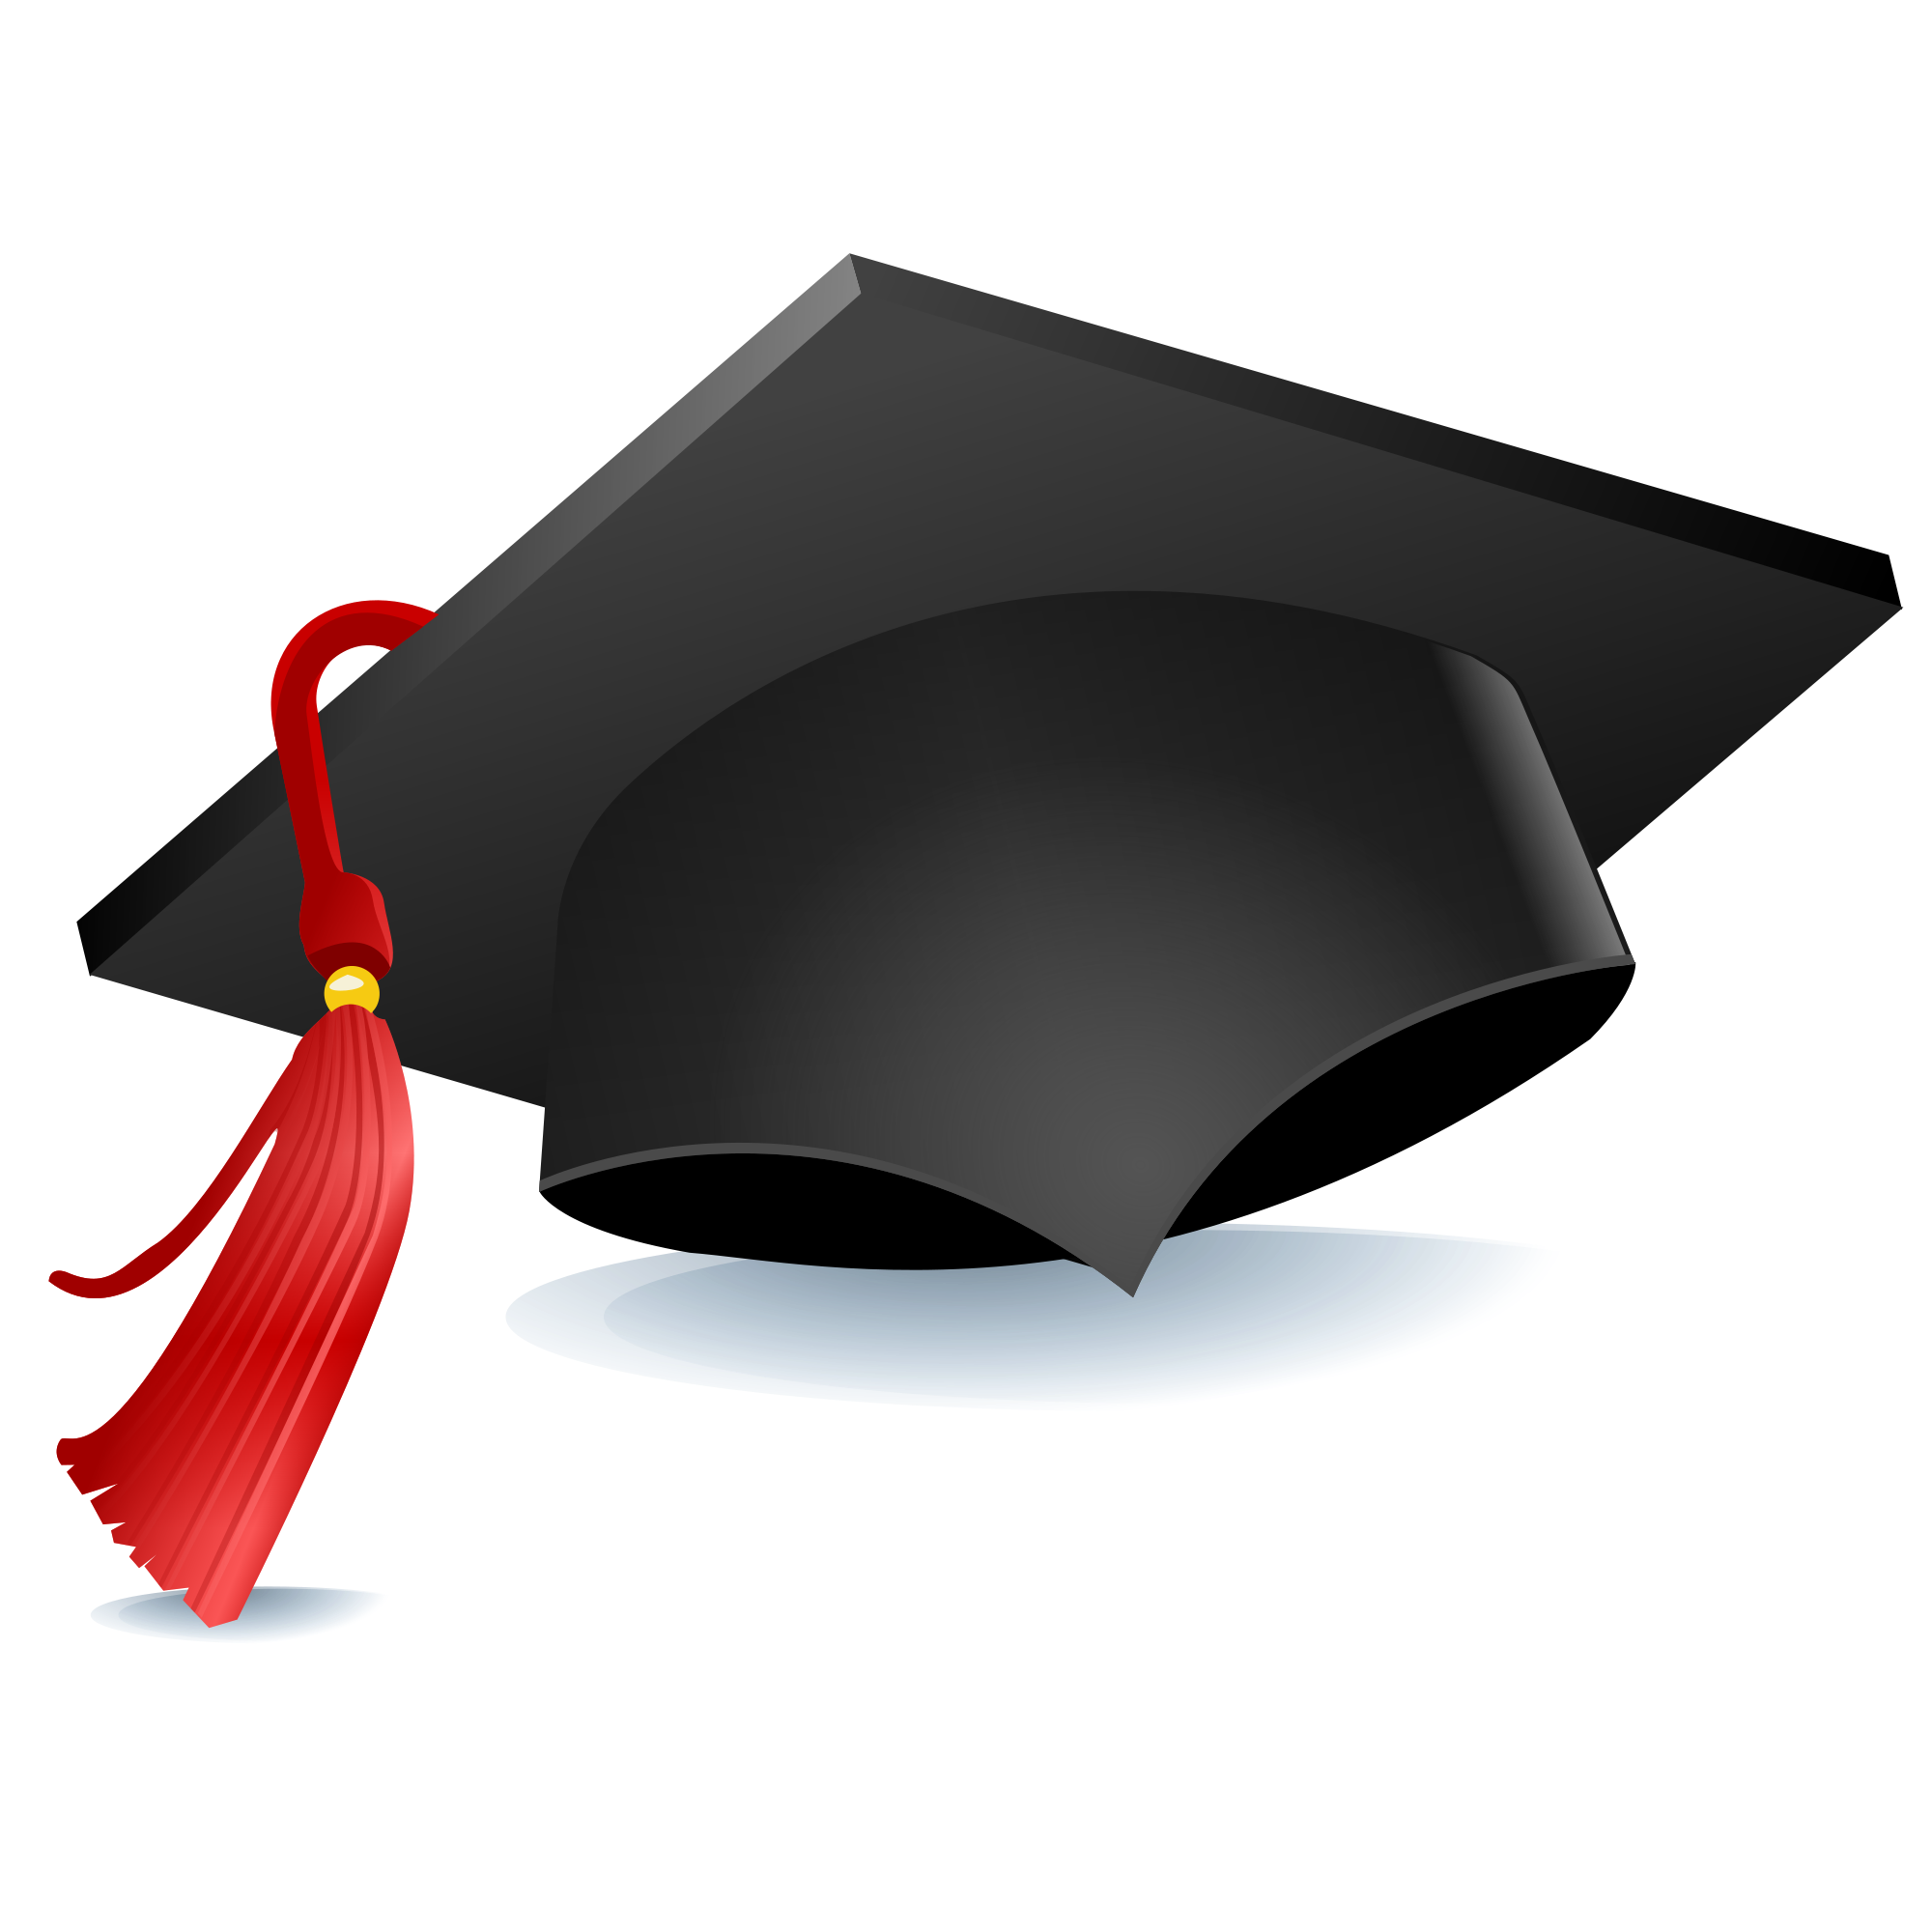 File:Graduation cap.png - Wikimedia Commons - Degree Cap PNG